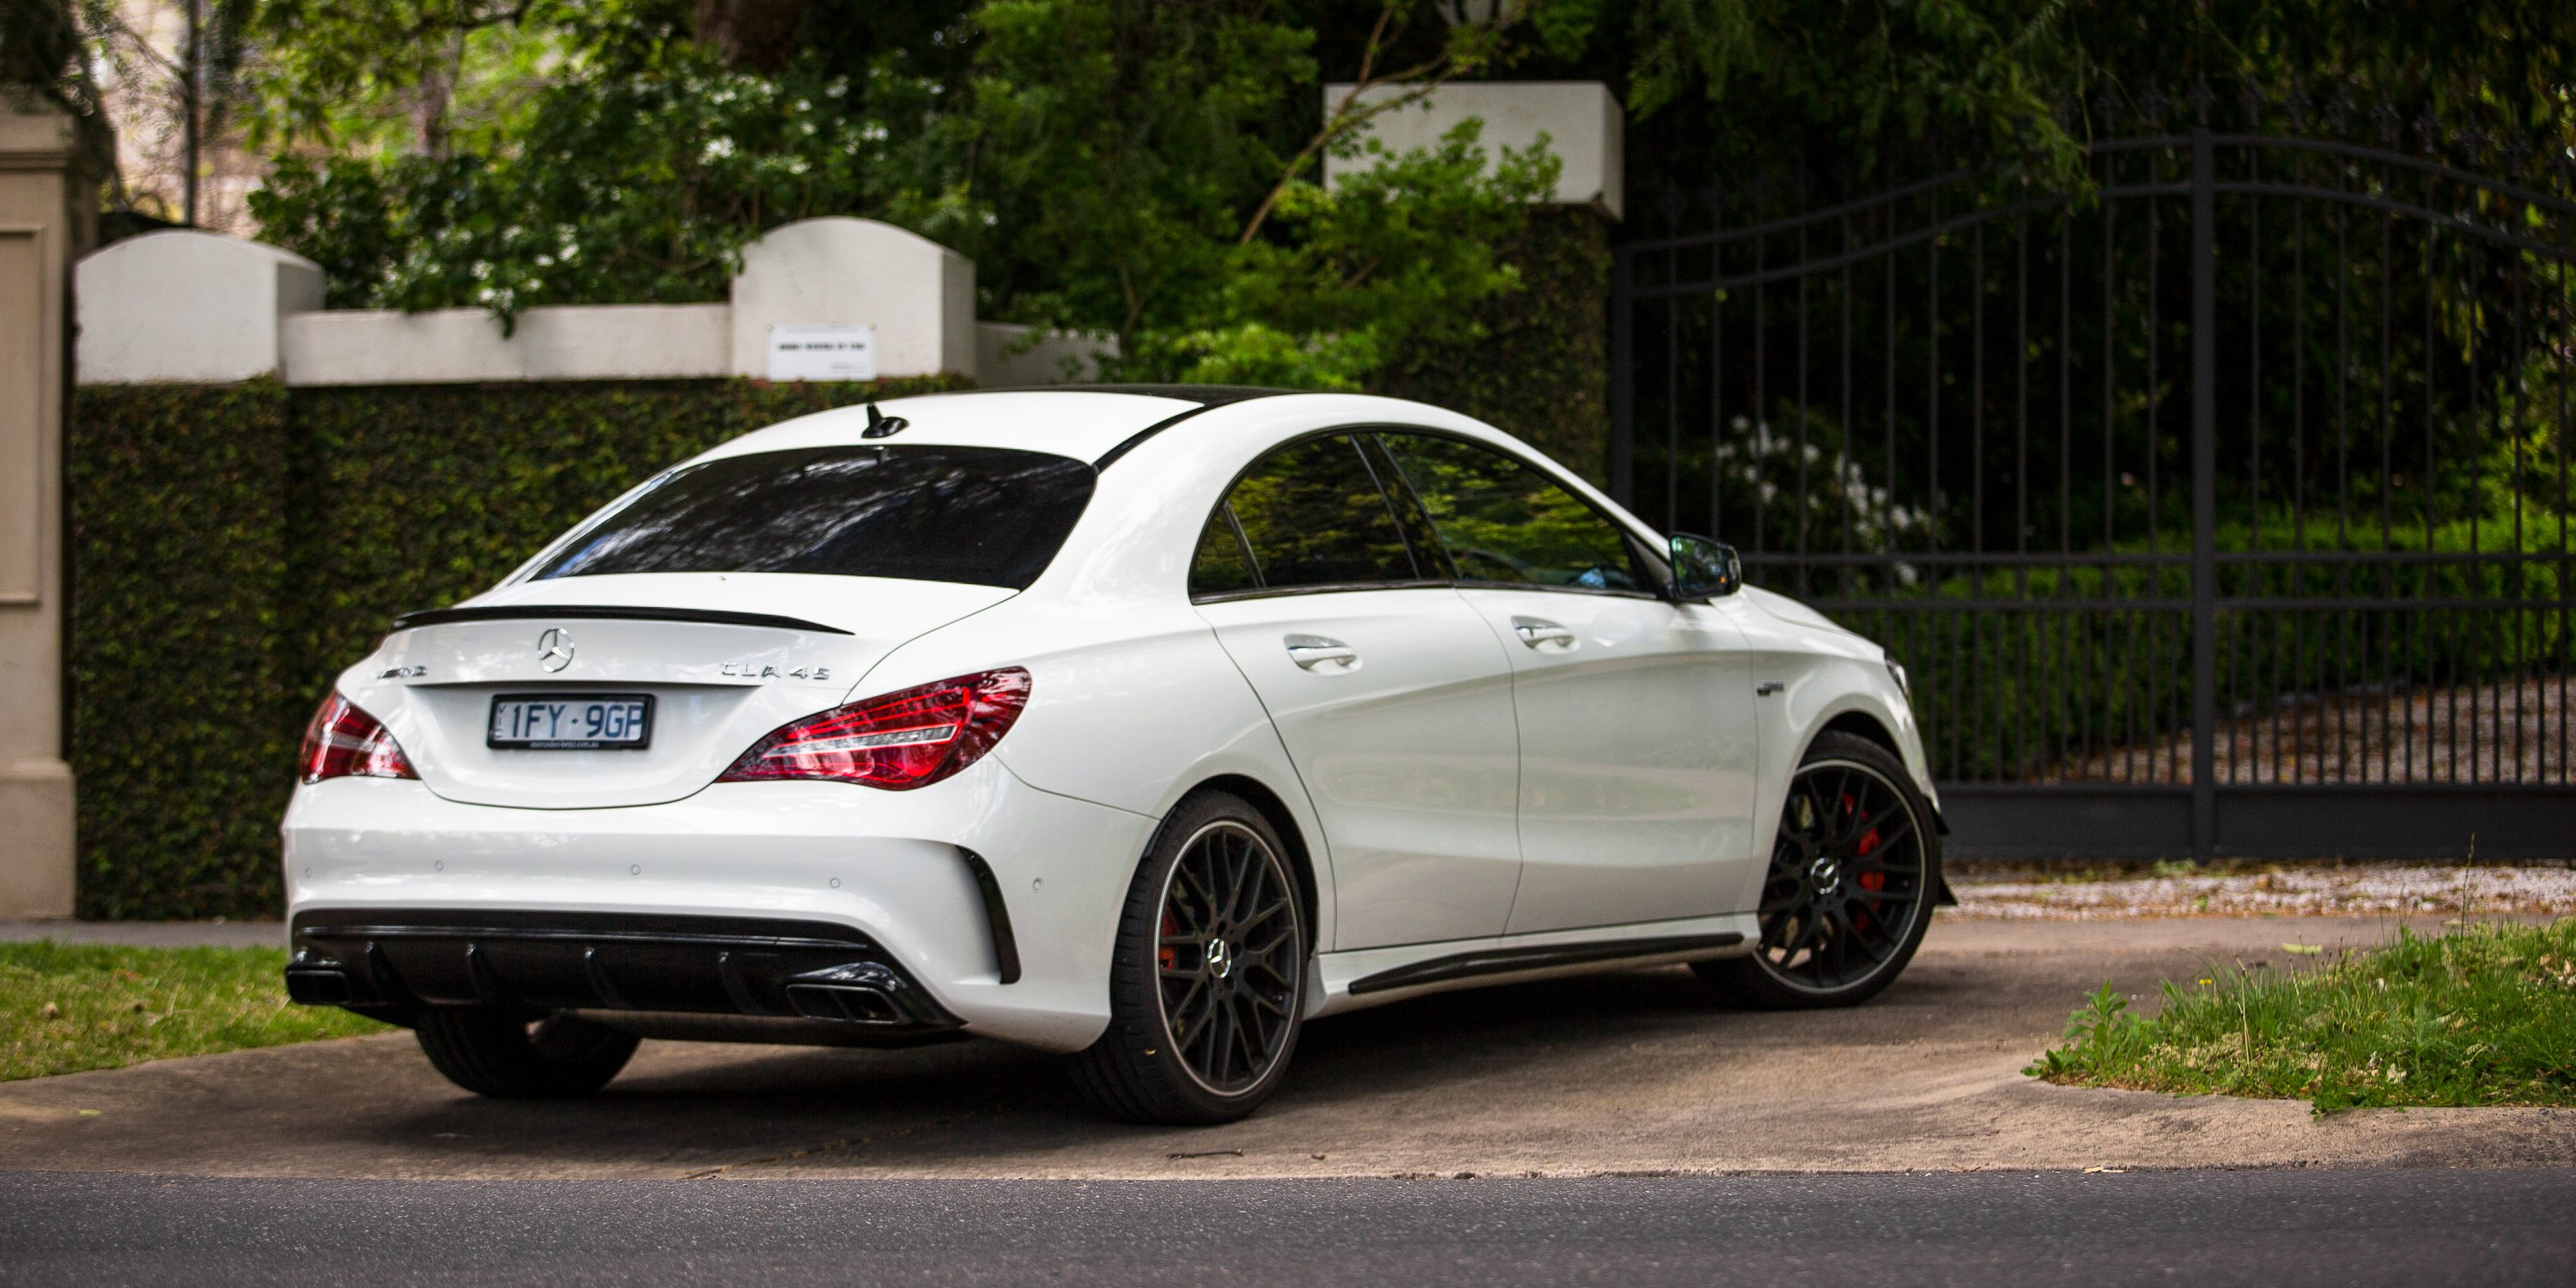 Mercedes Amg Coupe 2017 >> 2017 Mercedes-AMG CLA45 review - photos | CarAdvice